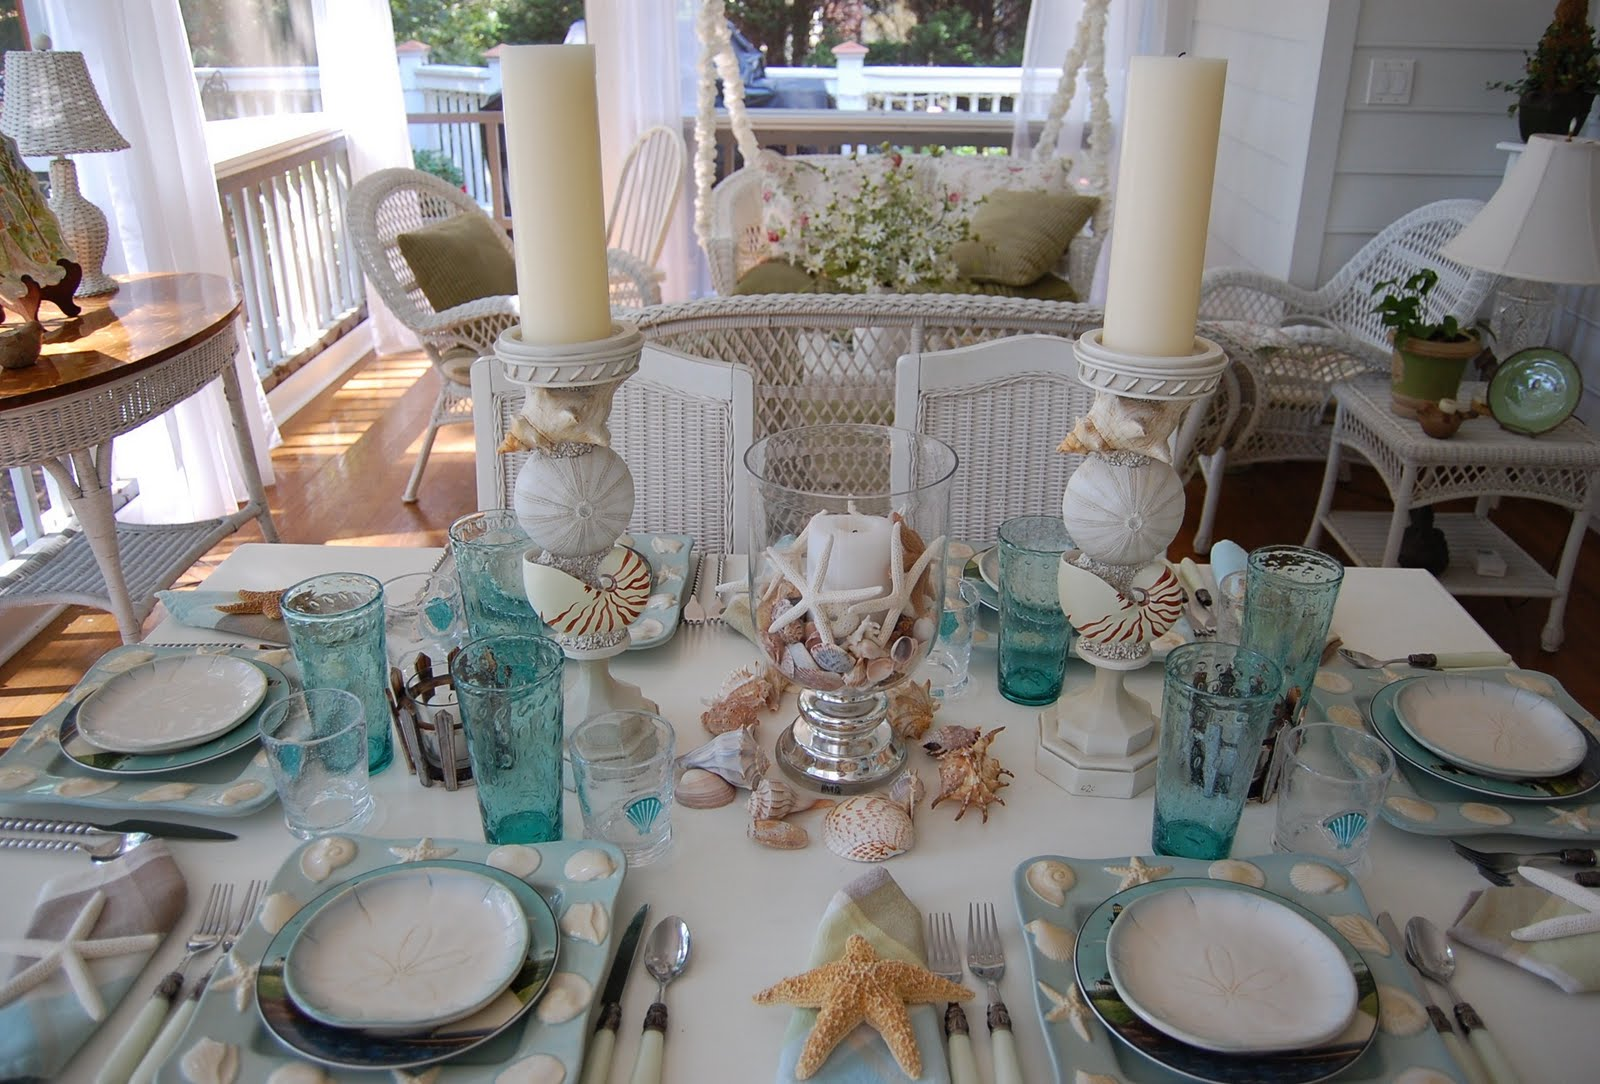 Beach Themed Table Setting Tablescape : beach tableware - pezcame.com